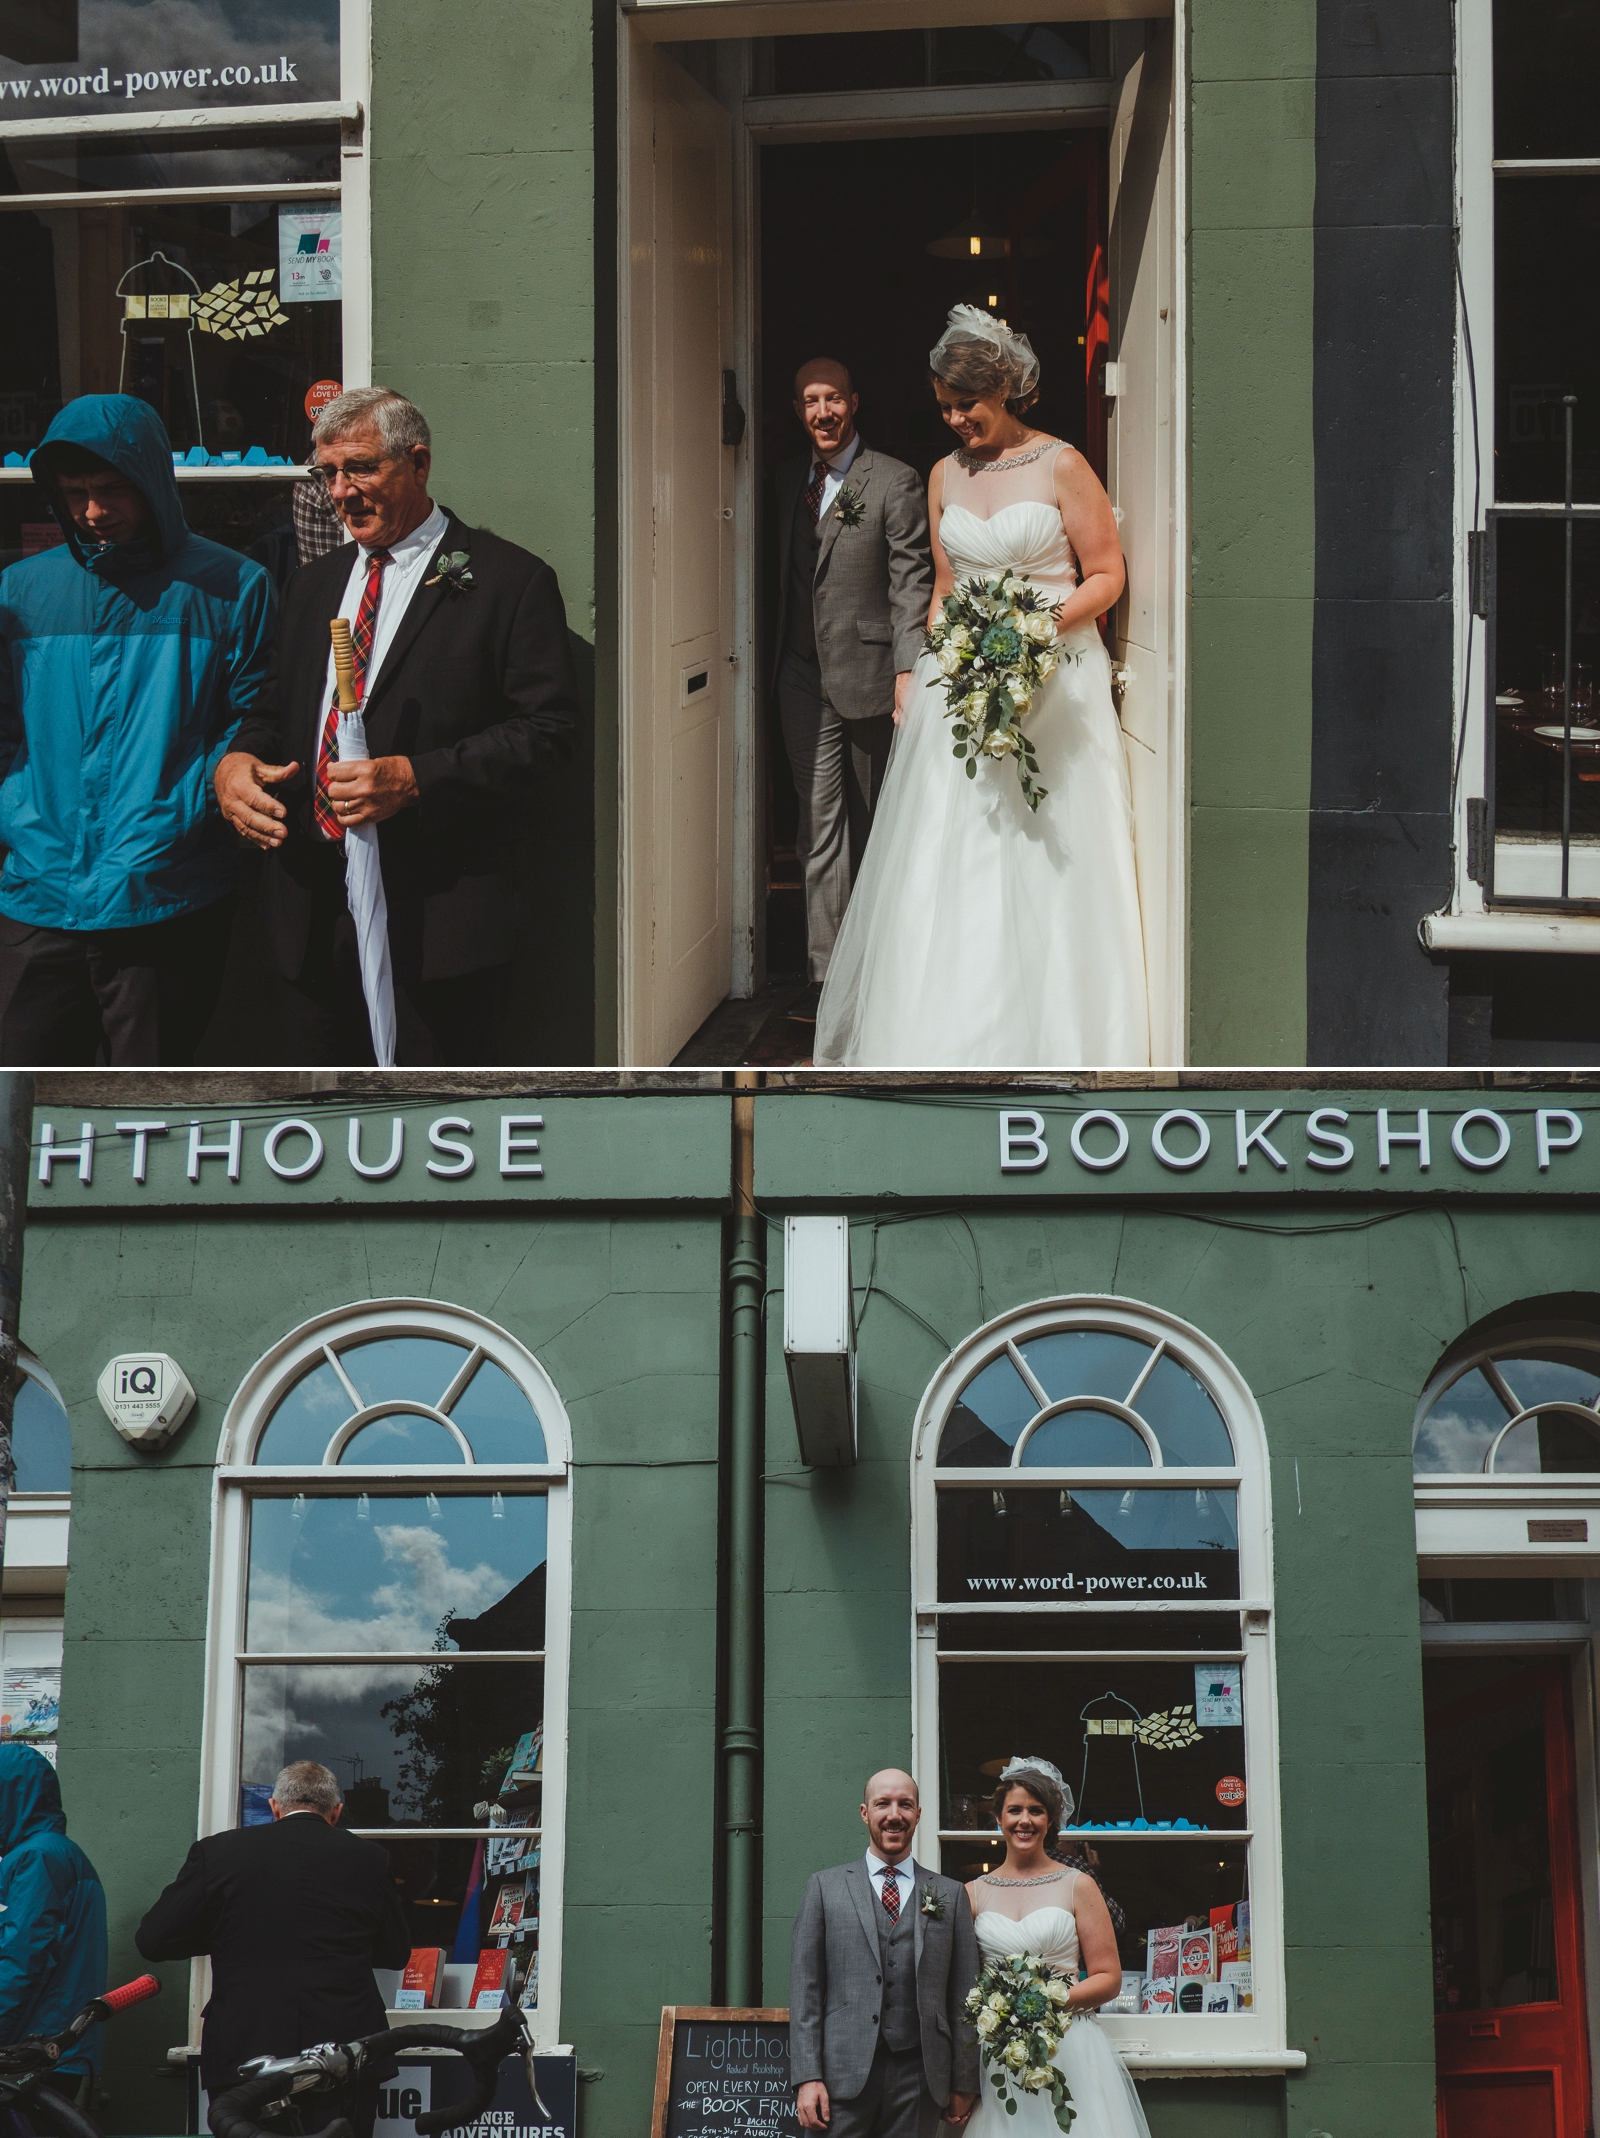 Angela___Andy_s_Edinburgh_elopement_by_Barry_Forshaw_0221.jpg